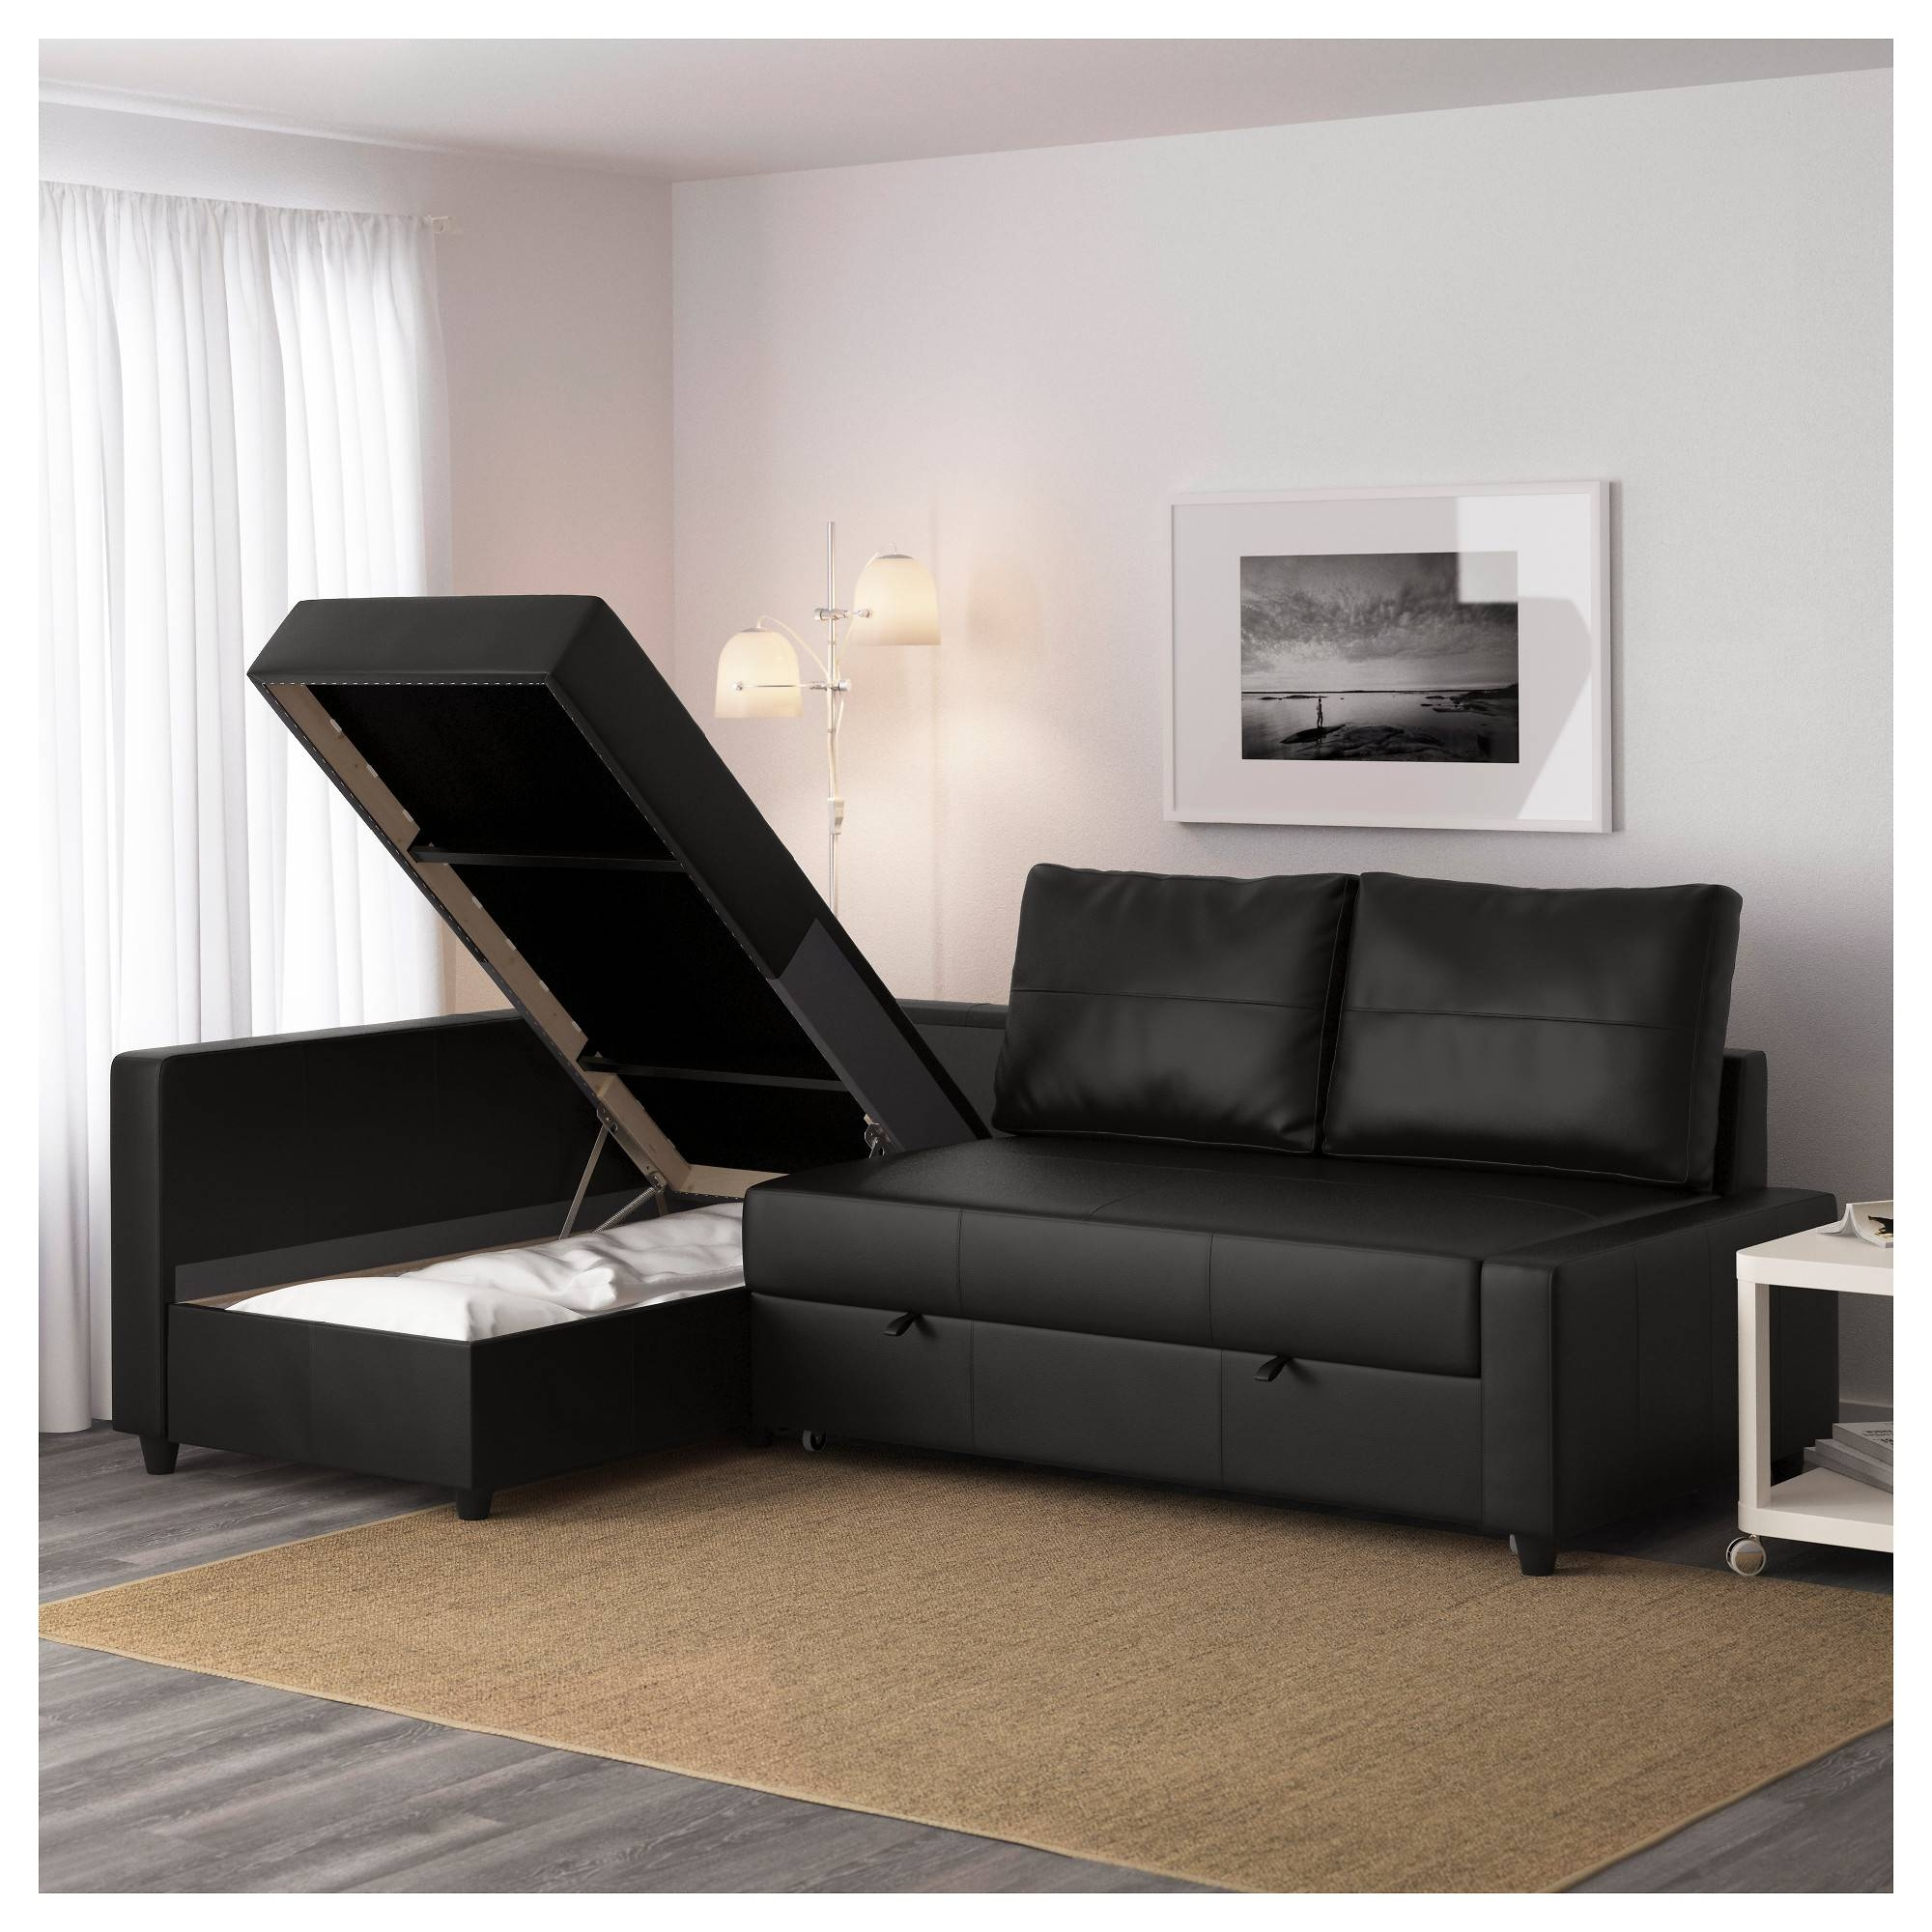 Friheten Corner Sofa-Bed With Storage Bomstad Black - Ikea throughout Corner Sofa Leather (Image 8 of 30)